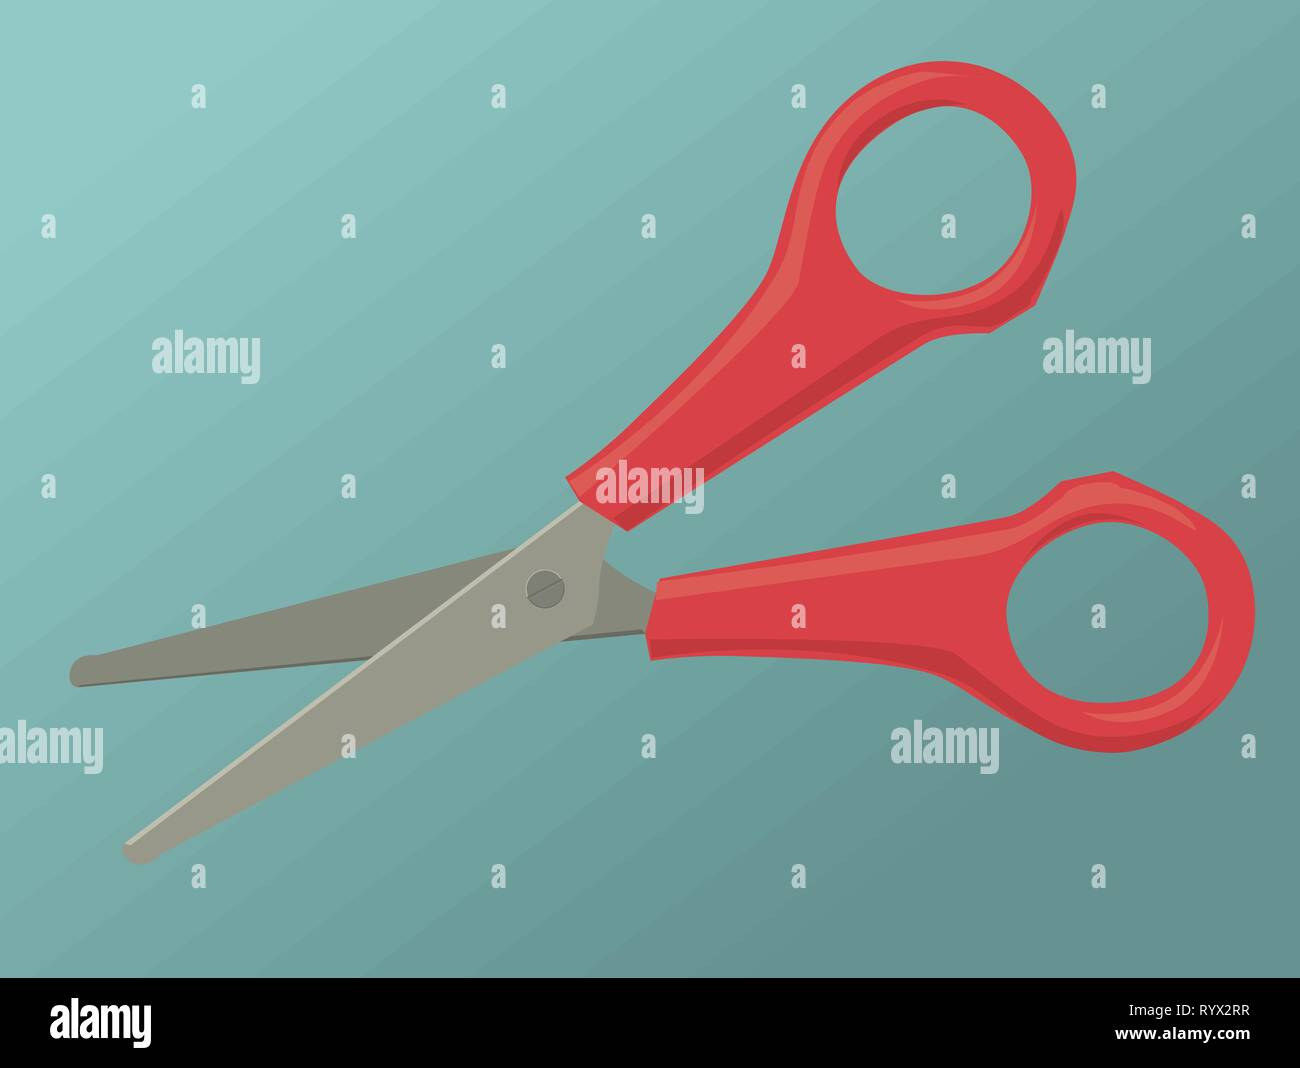 A pair of red scissors in an open position - Stock Vector